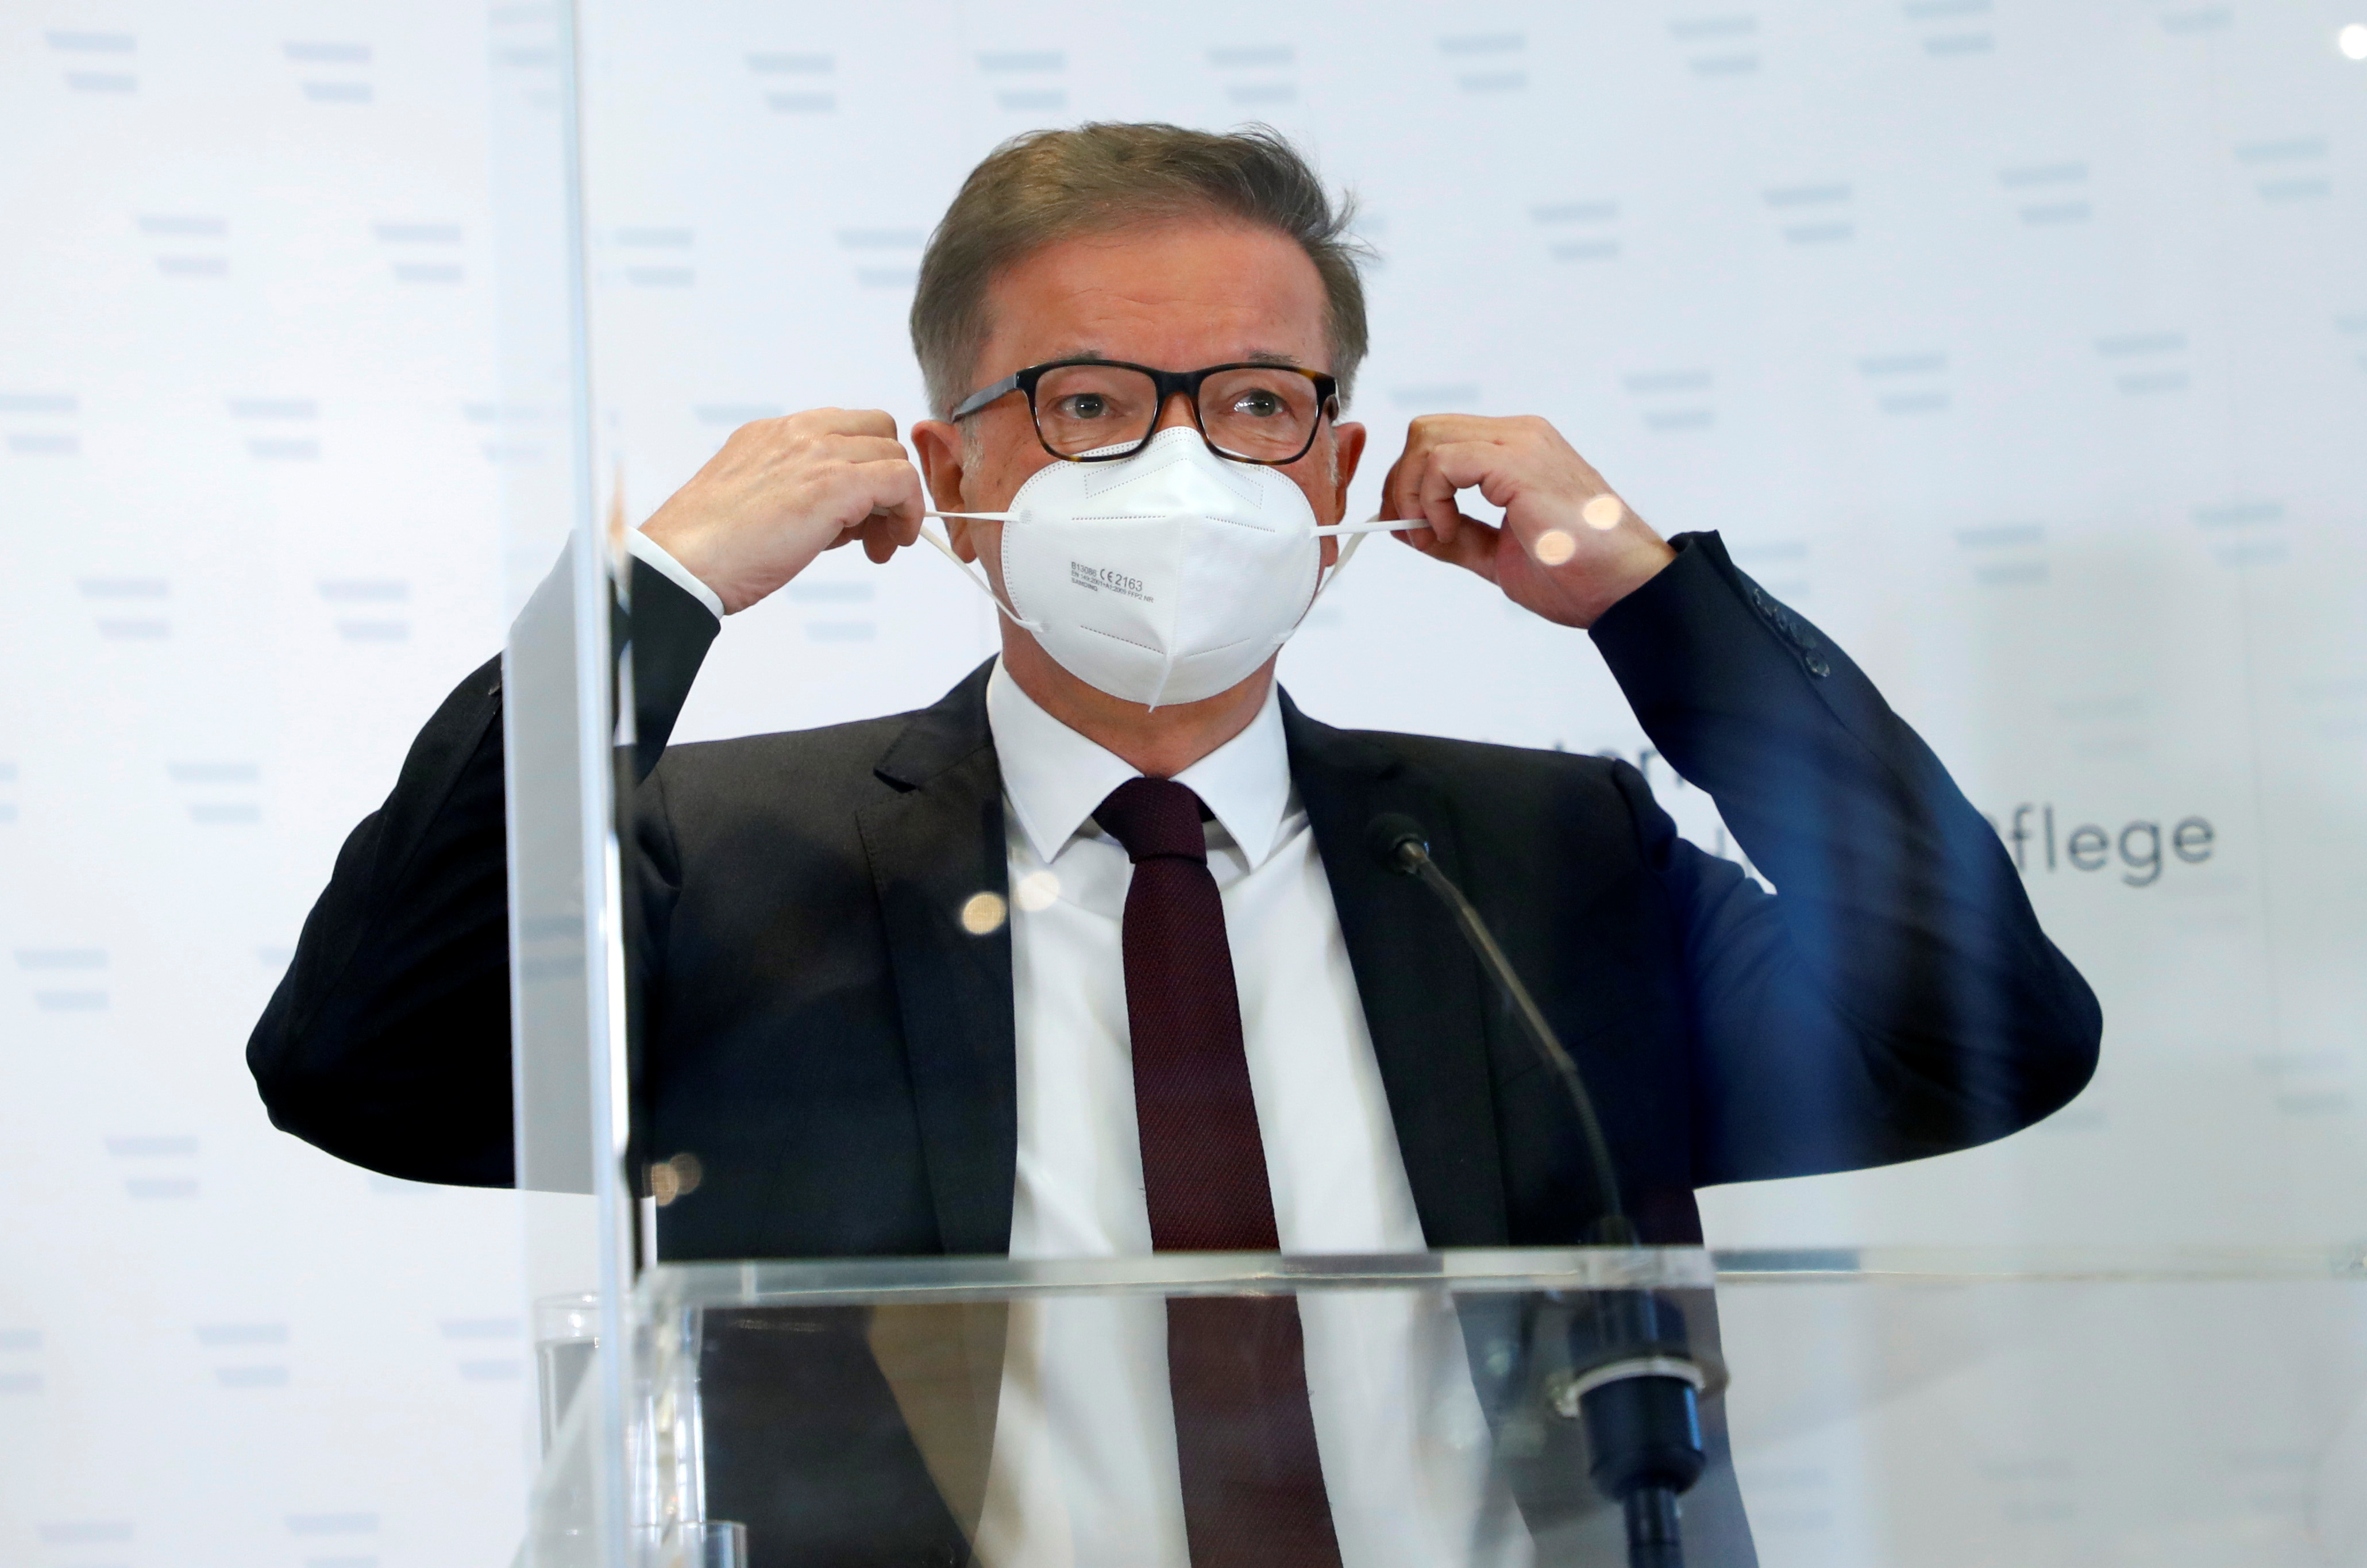 Austrian Health Minister Rudolf Anschober attends a news conference in Vienna, Austria, April 13, 2021. REUTERS/Leonhard Foeger